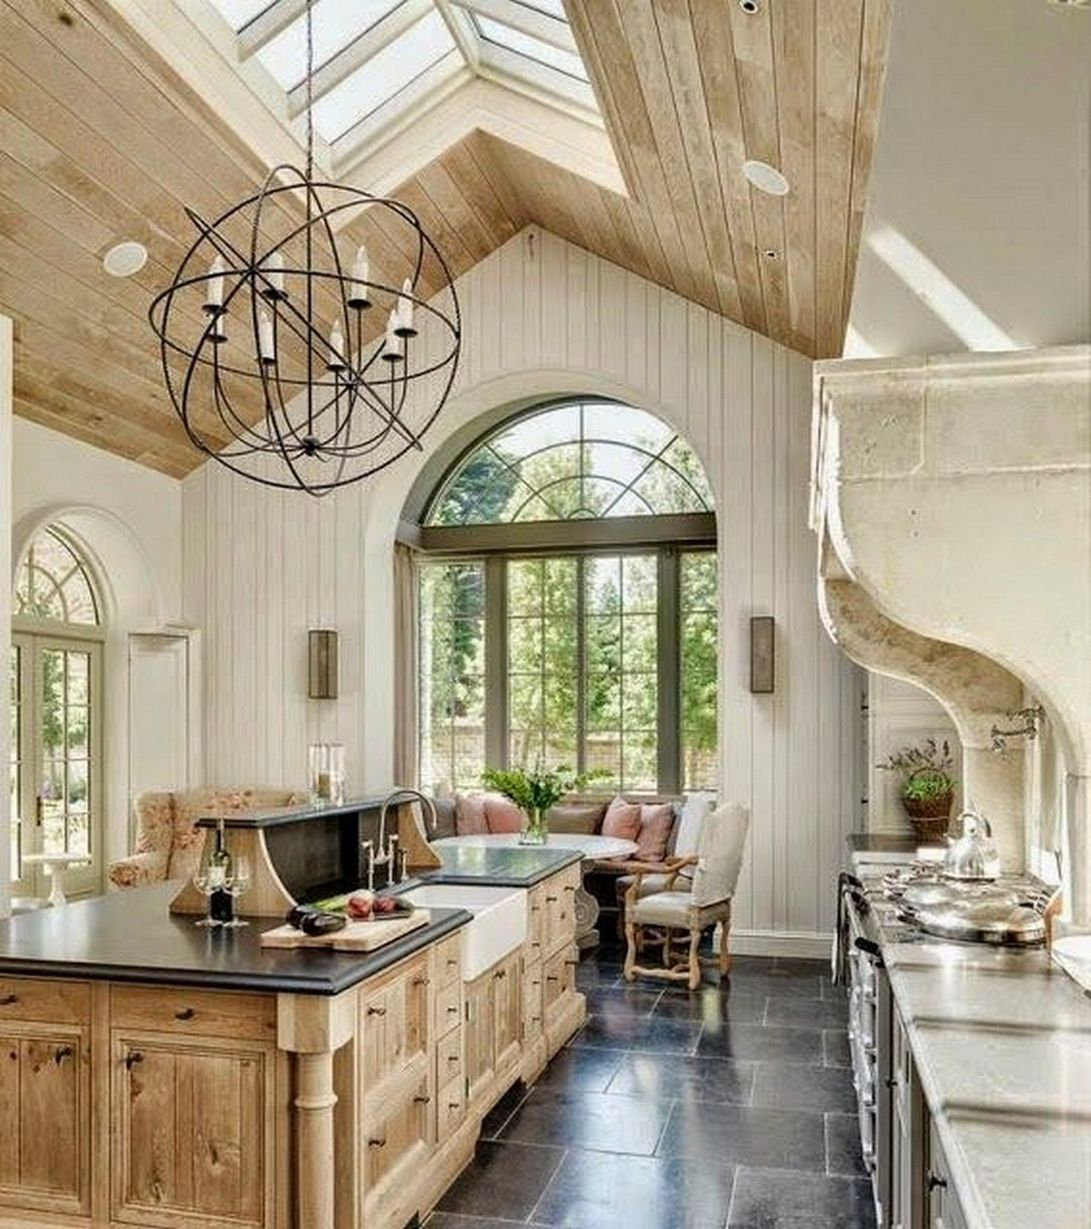 Delightful 50 Best French Country Kitchens Design Ideas U0026 Remodel Pict  Http://decorspace.net/50 Best French Country Kitchens Design Ideas  Remodel Pict/